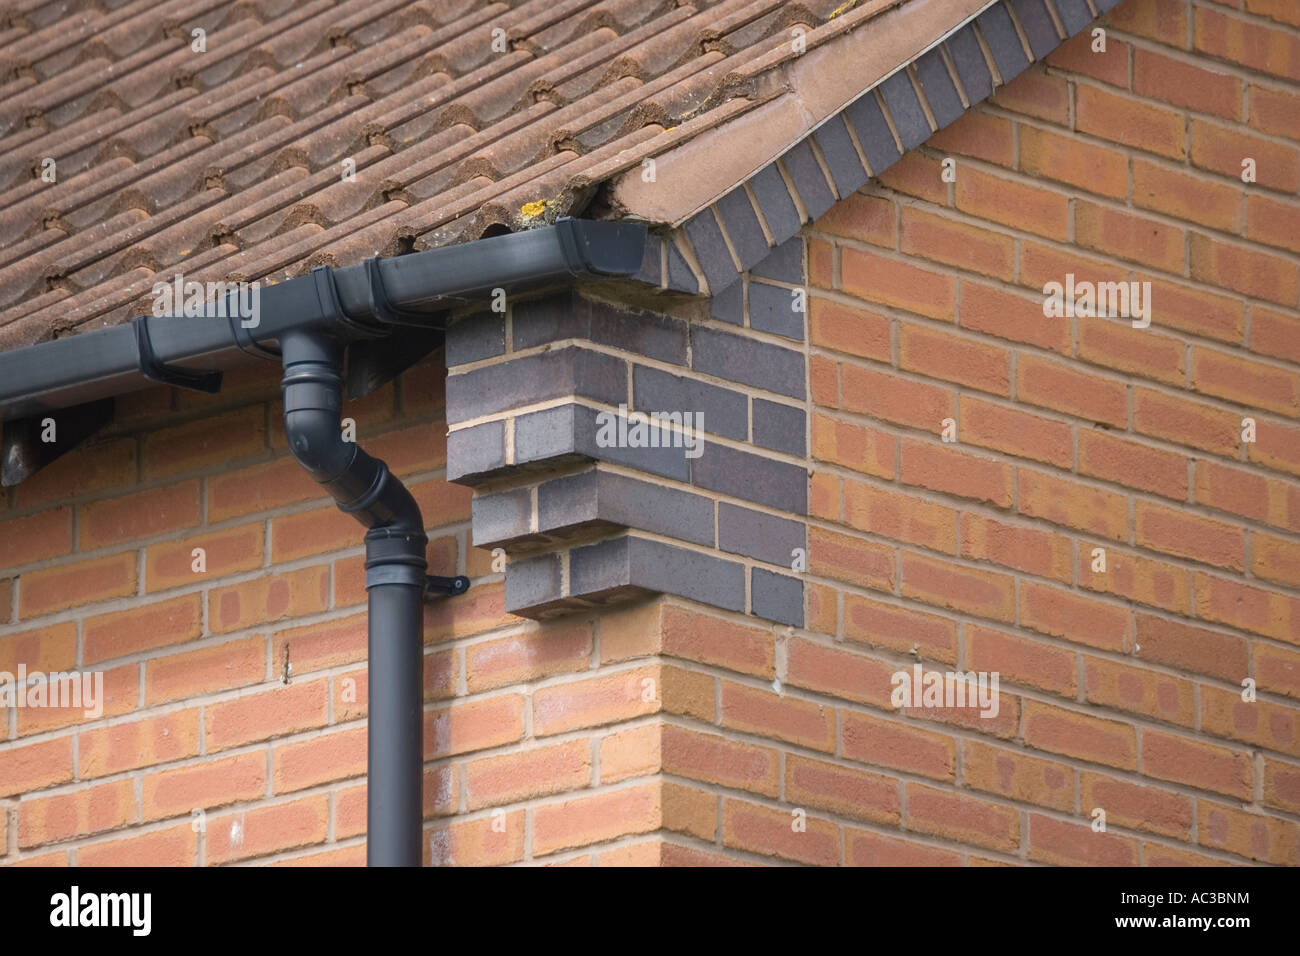 Corbelling Or Brickwork Corbels At Gable Corners Of House